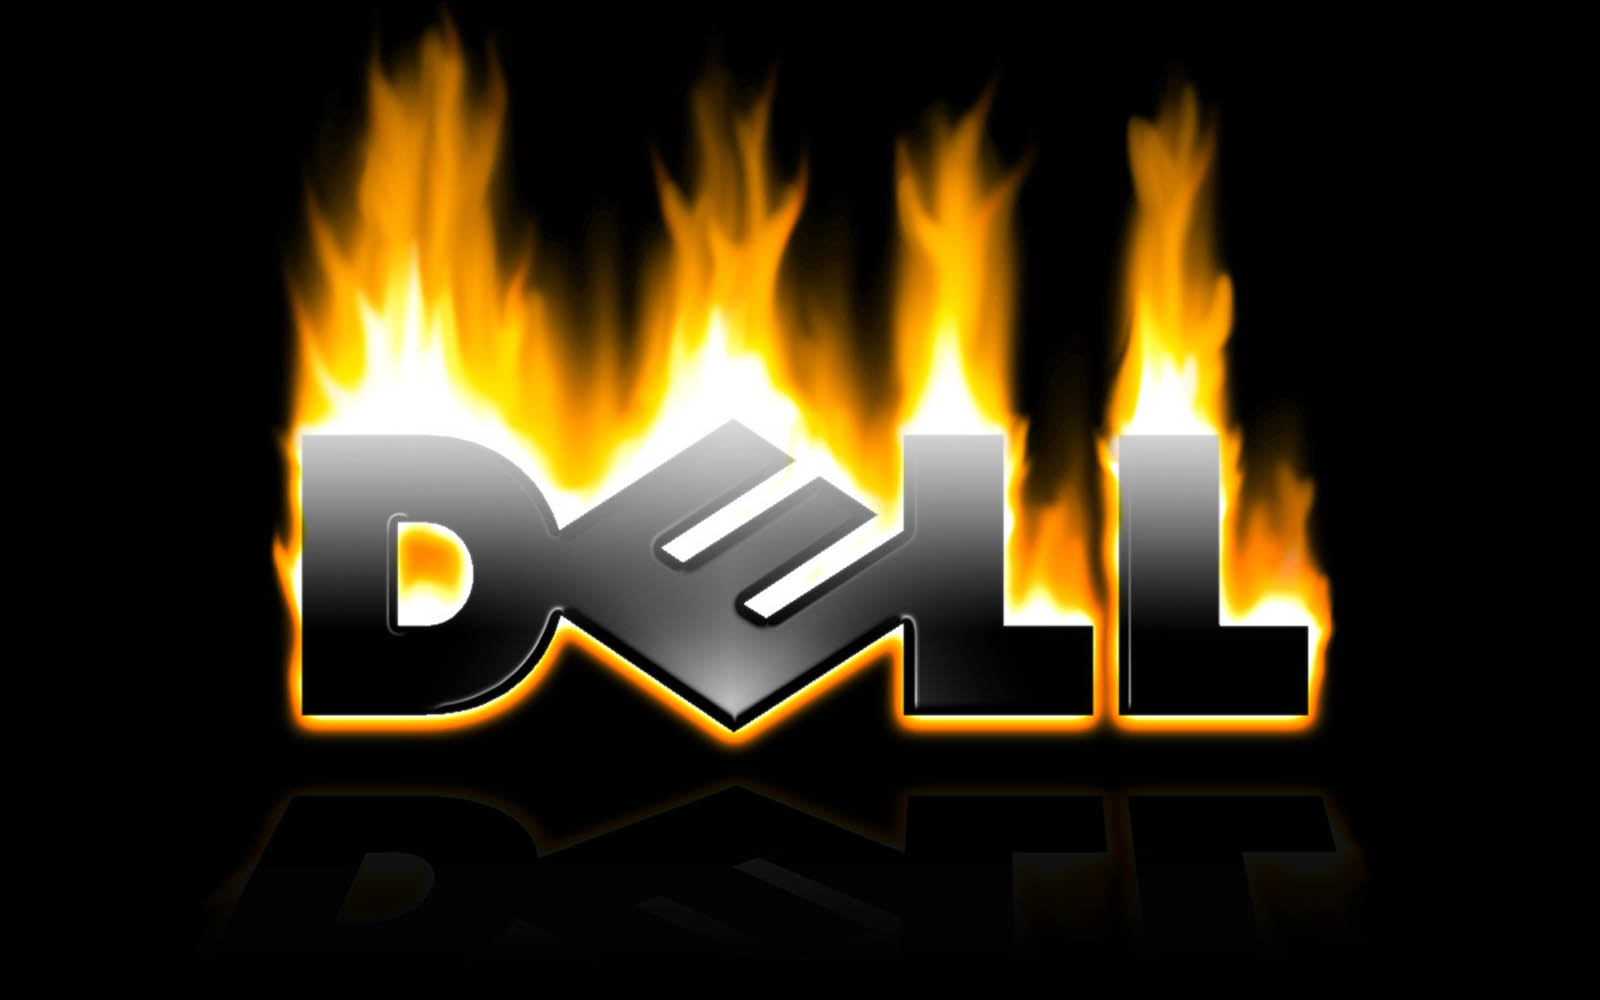 Wallpapers dell wallpapers - 4k wallpaper for dell laptop ...